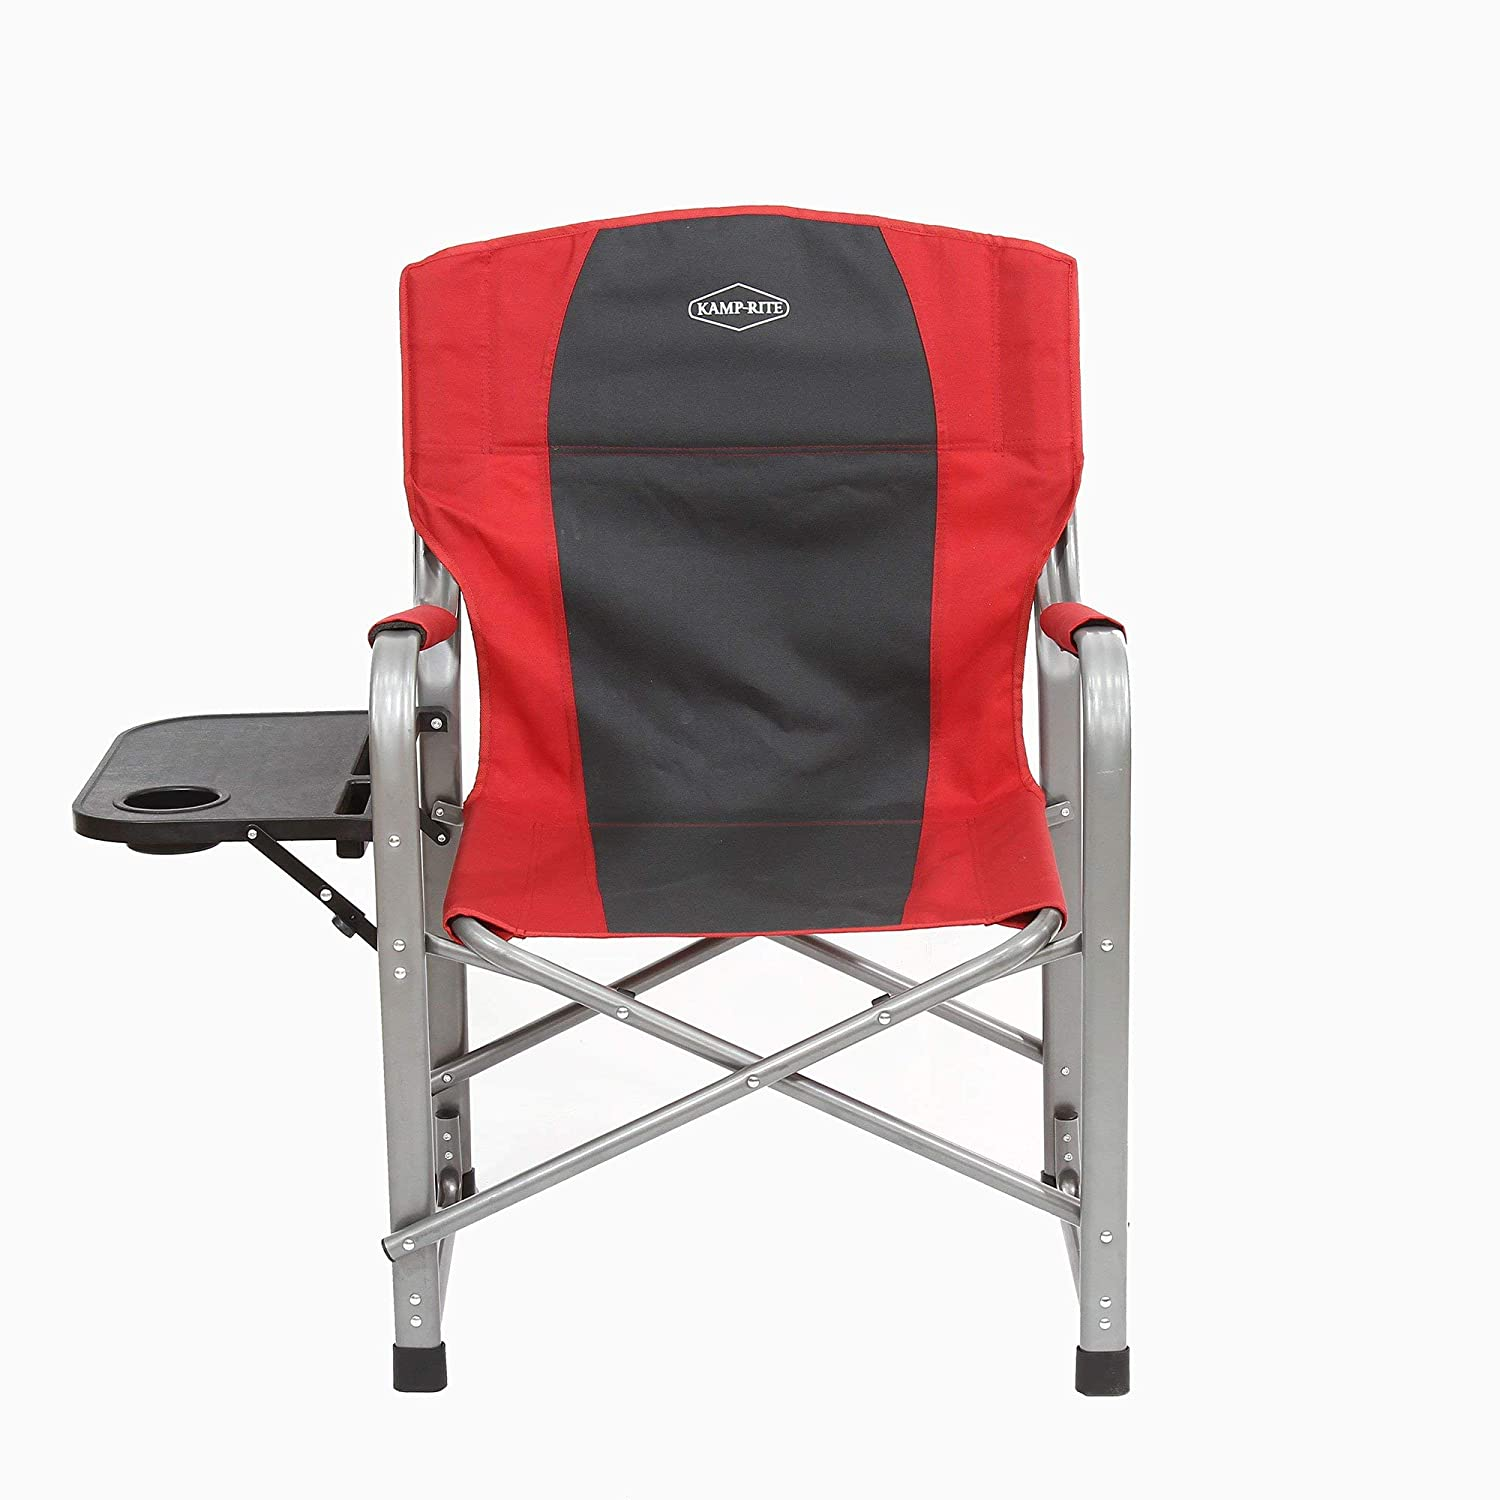 Kamp-Rite Outdoor Camping Tailgating Folding Director s Chair w Side Table